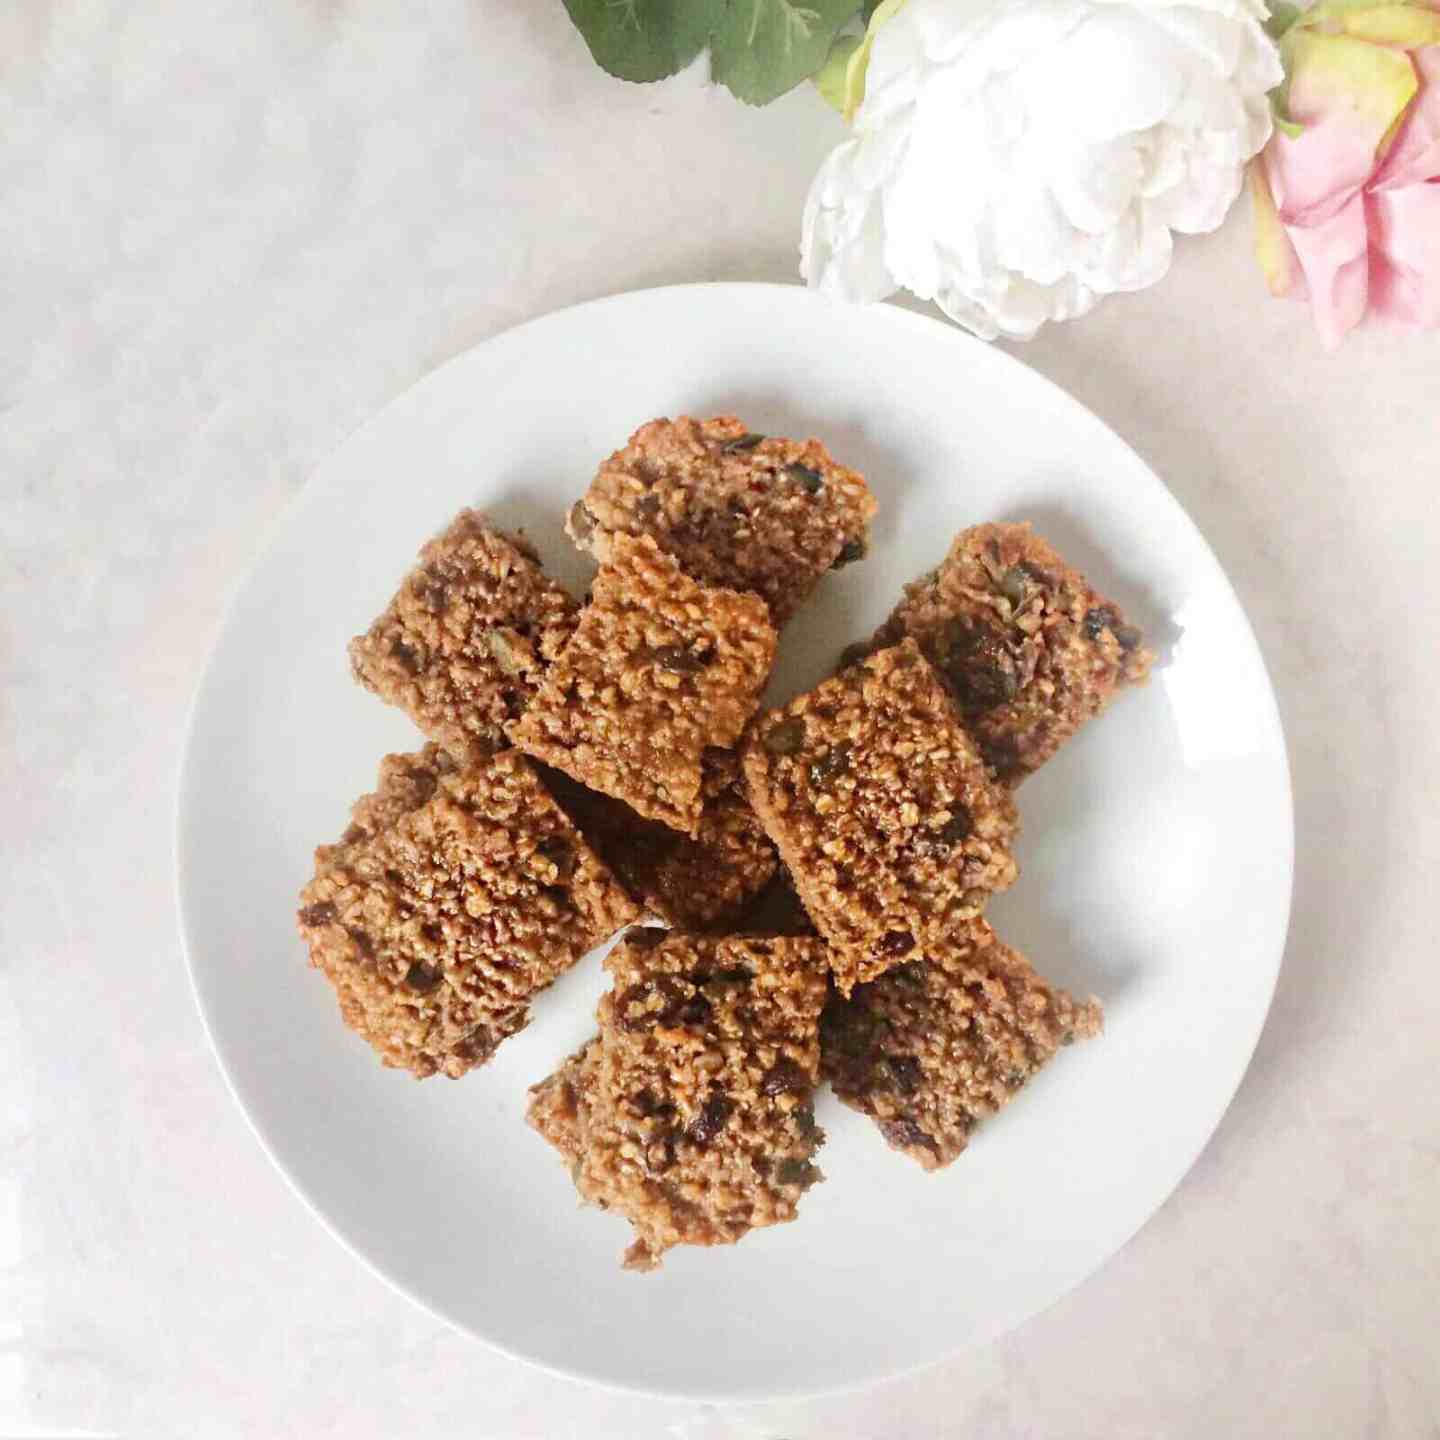 Banana and Peanut Butter Oat Bars